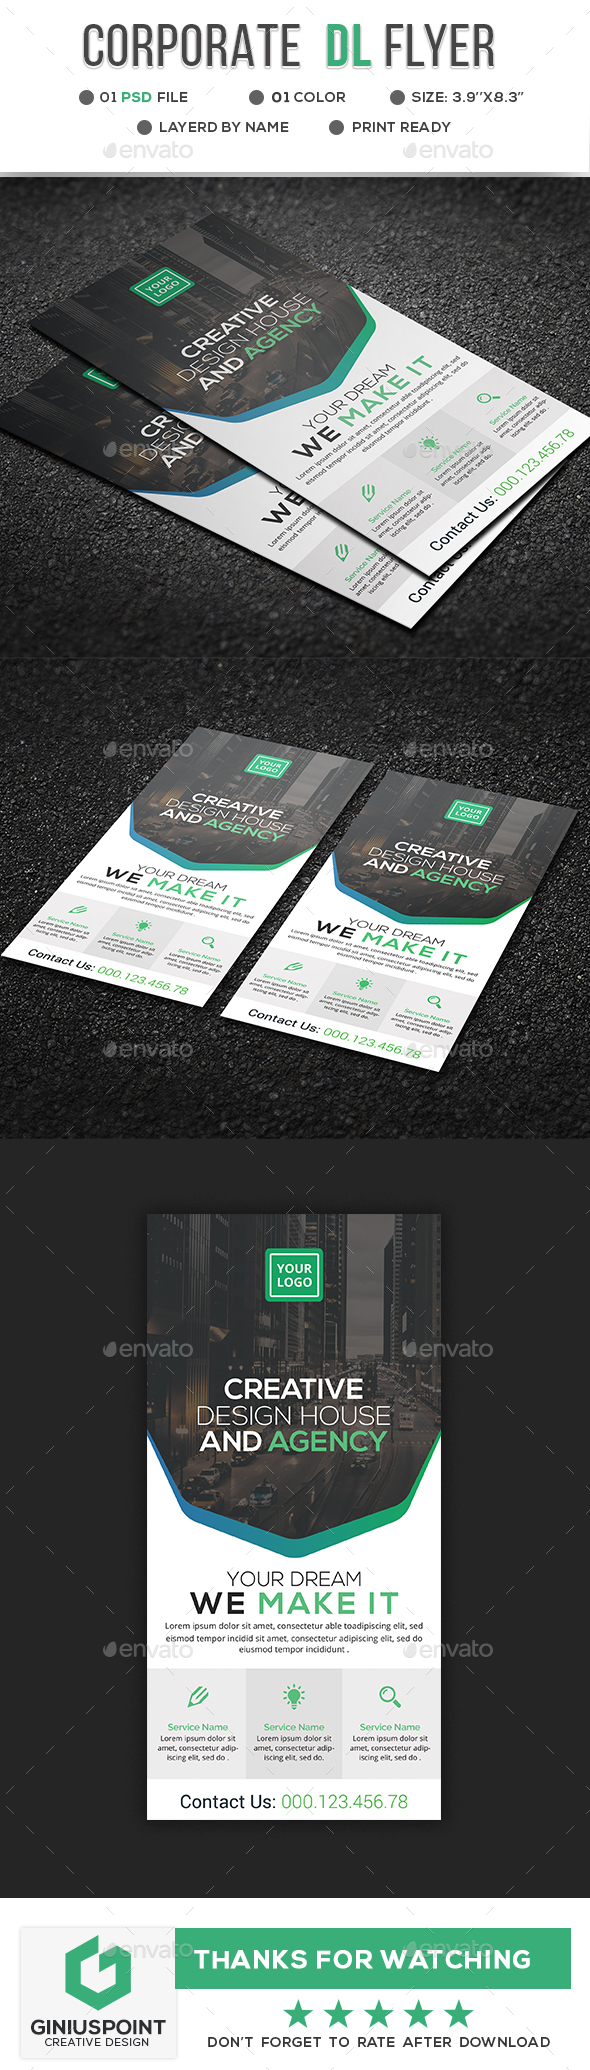 Corporate DL Flyer - Corporate Flyers